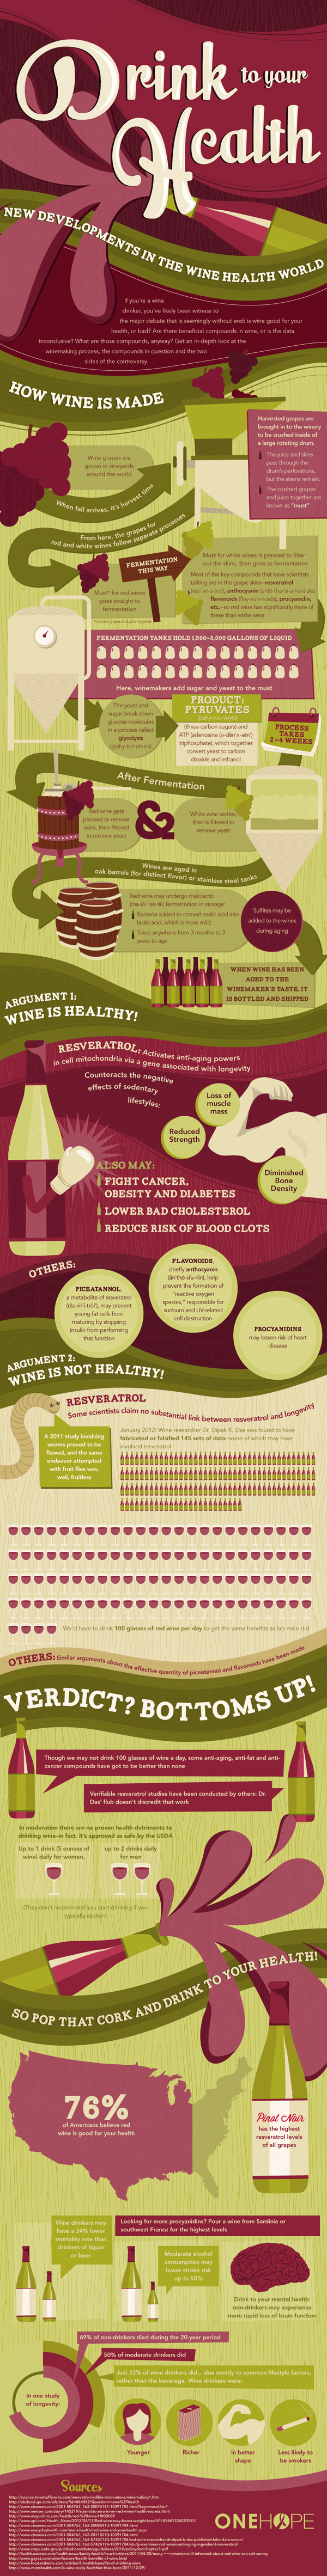 Drink to Your Health infographic from ONEHOPE Wine